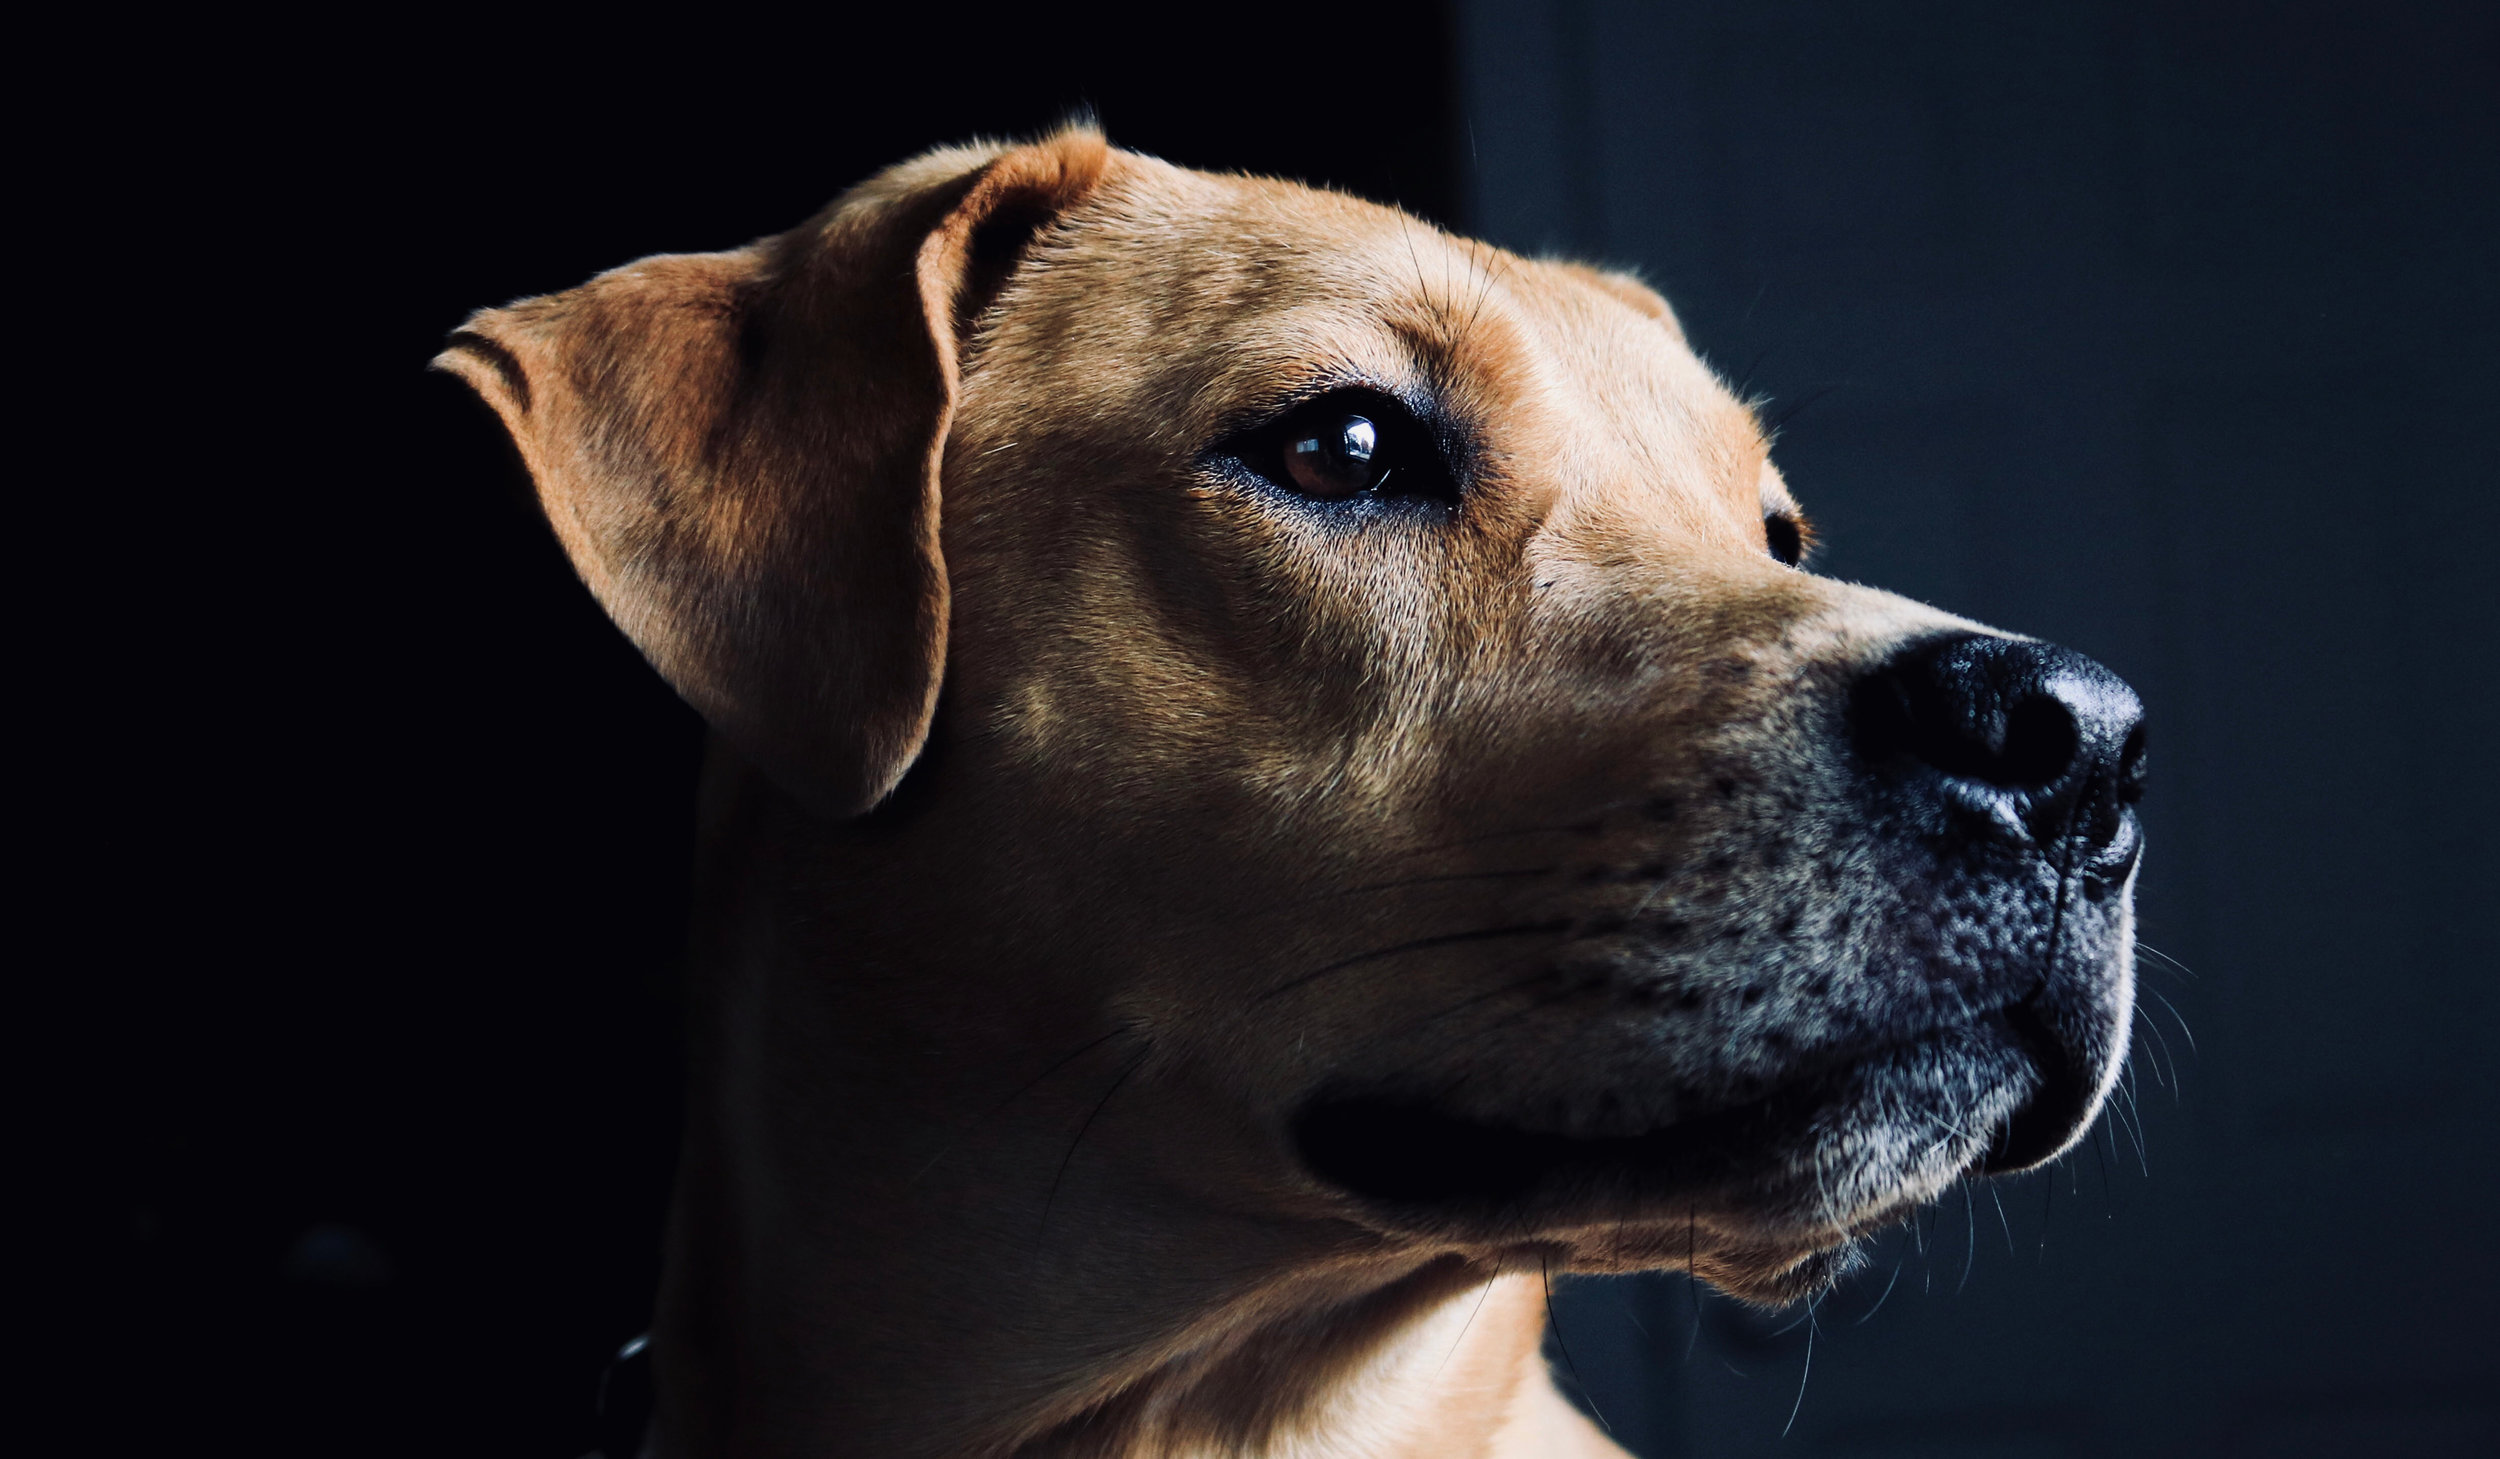 Animal Law - We work with people who love animals in order to preserve the well-being of companion animals, wildlife, and so-called utility animals alike.